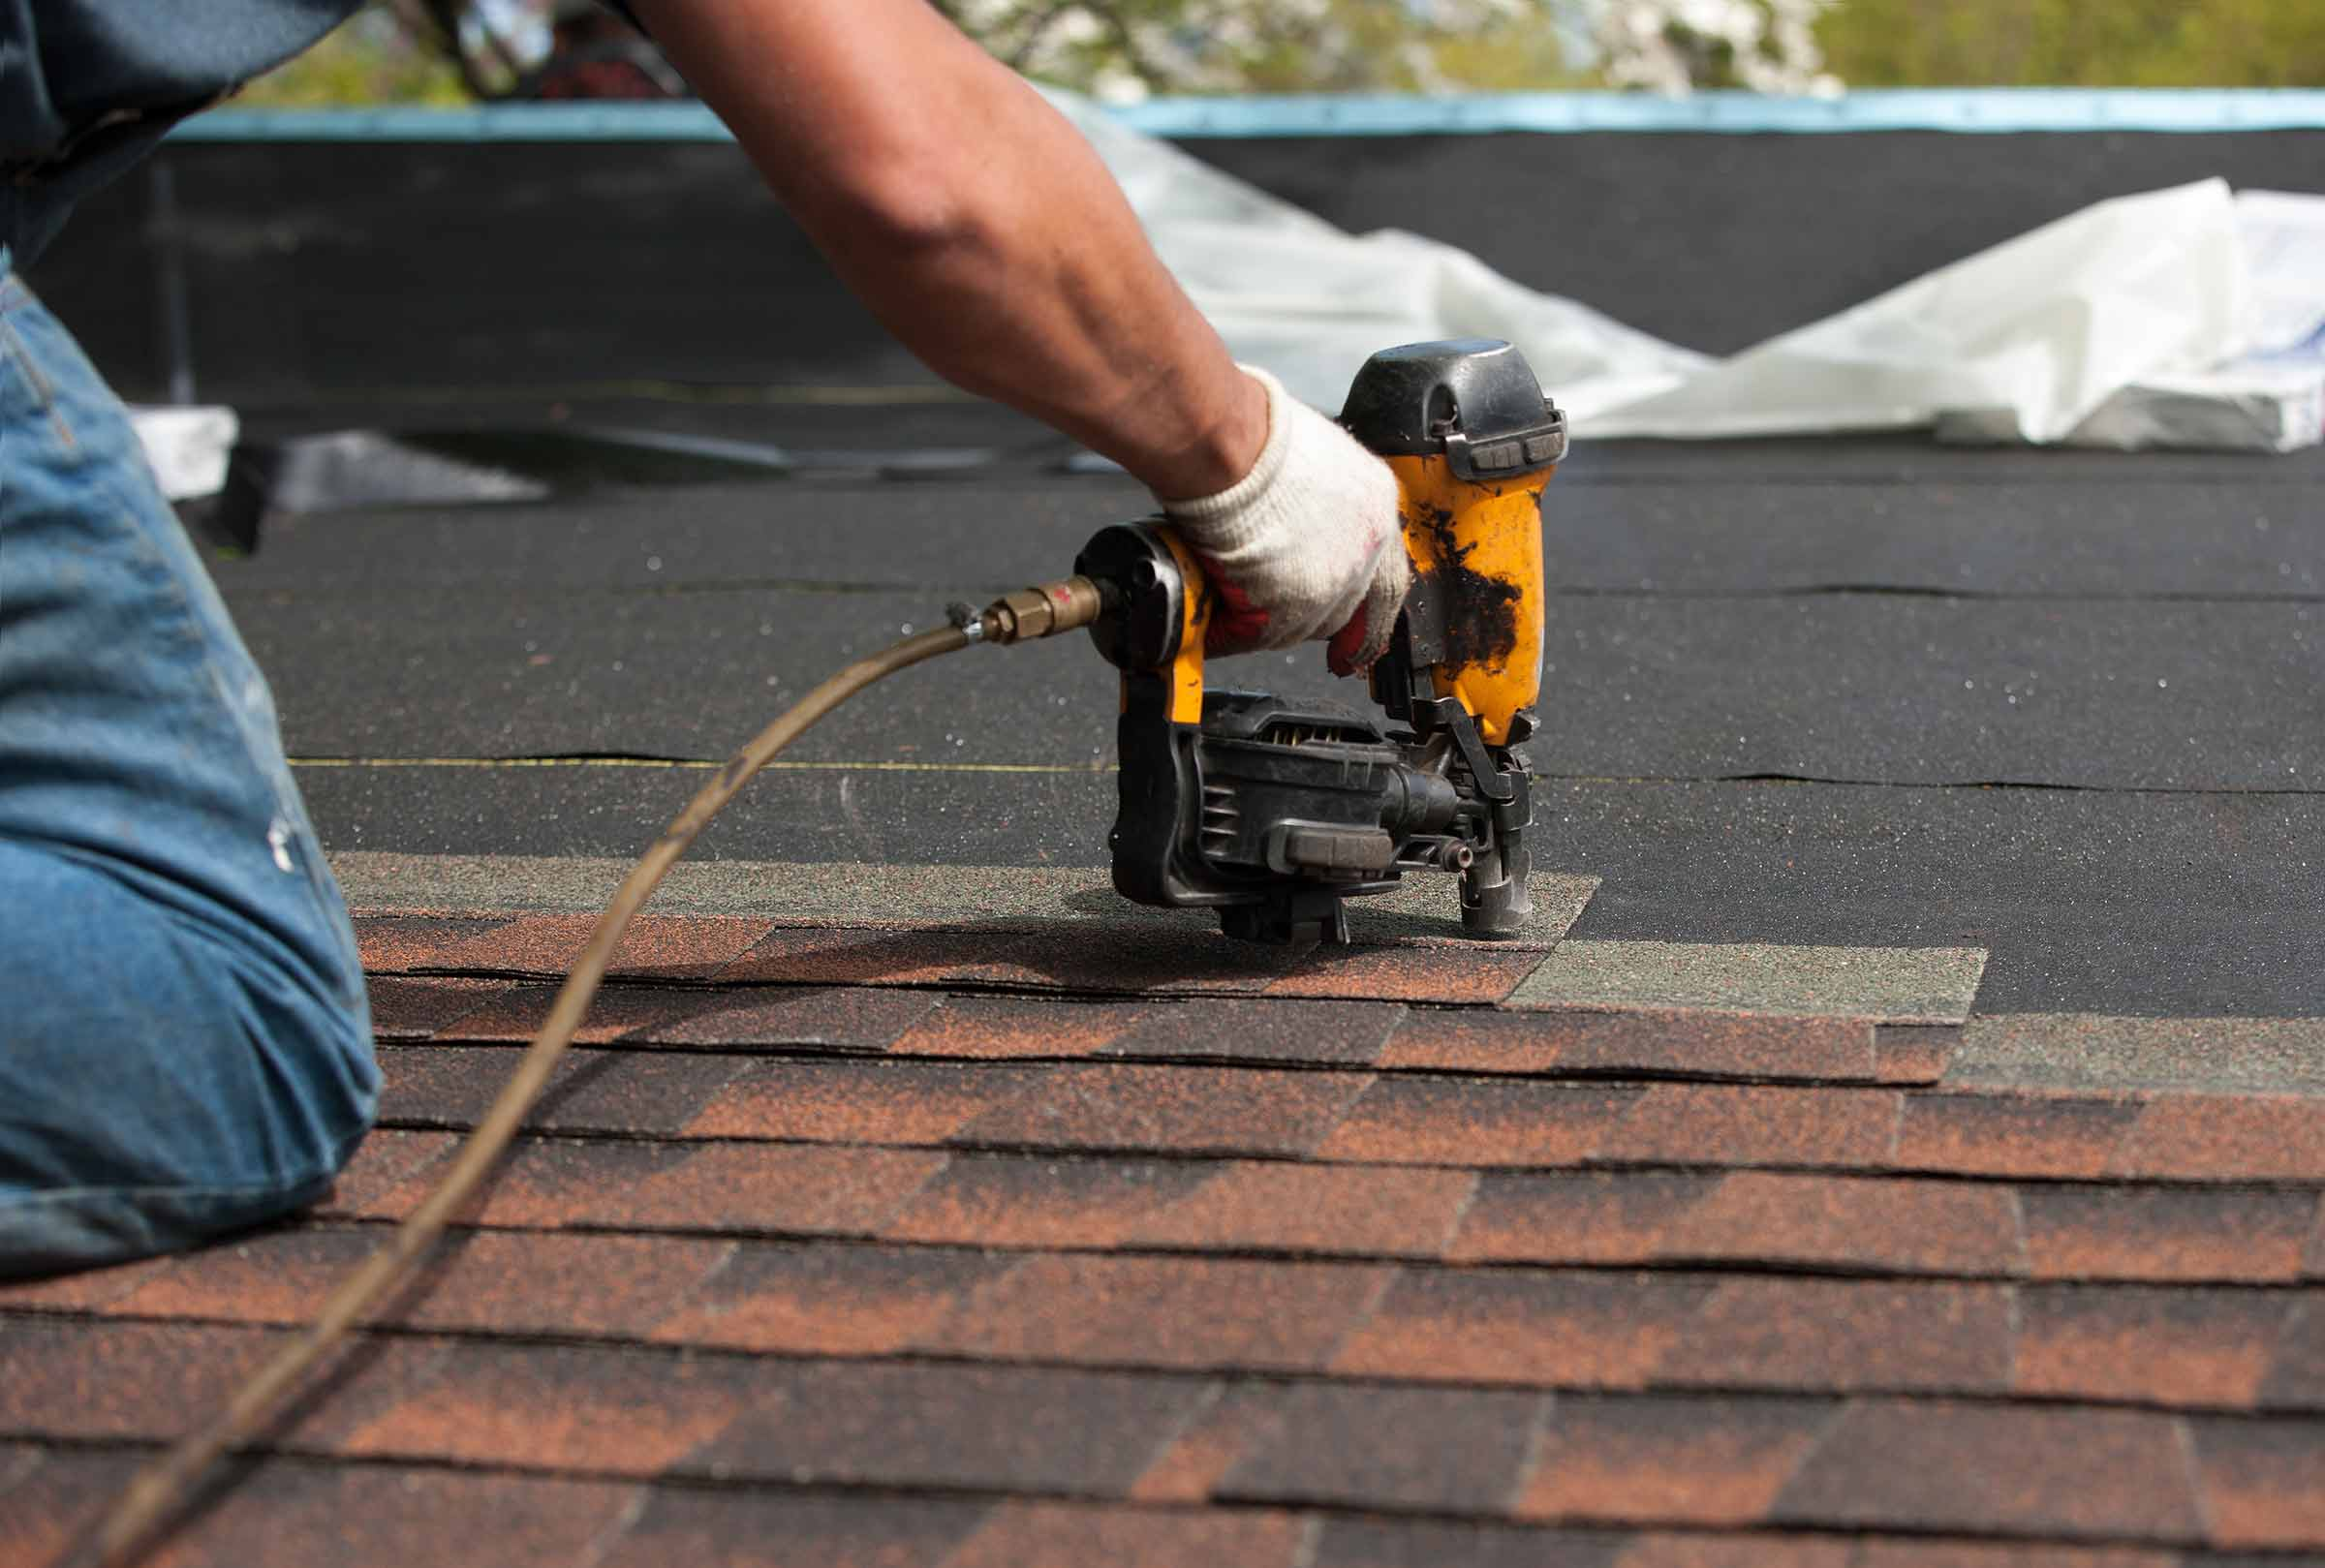 How to Make Sure That You Have Hired the Right Roof Contractor?